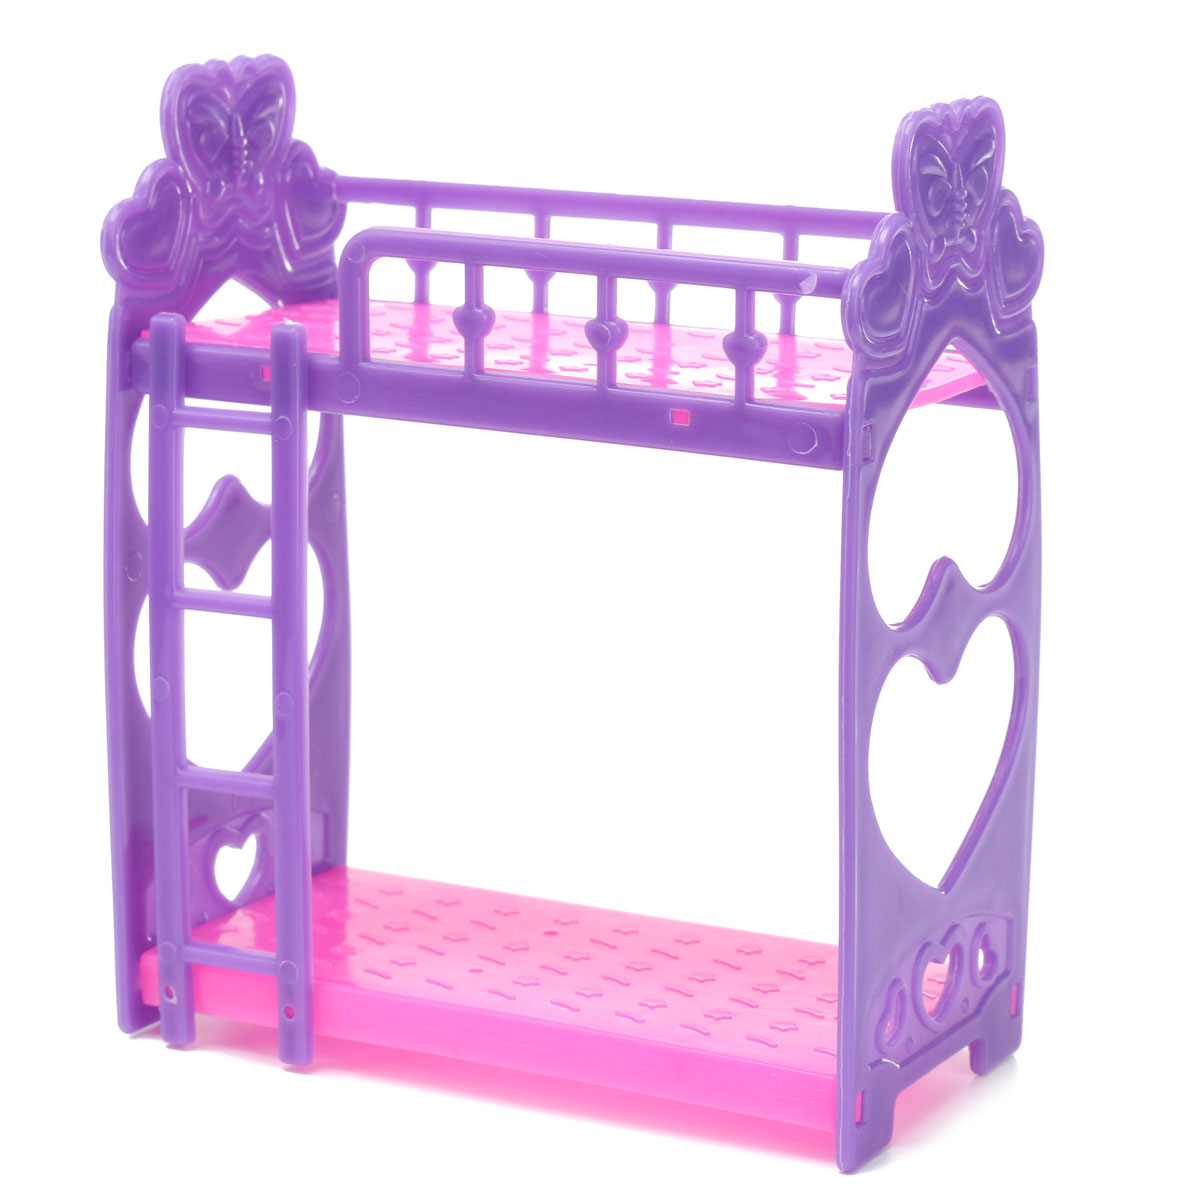 miniature double bed toy furniture for dollhouse